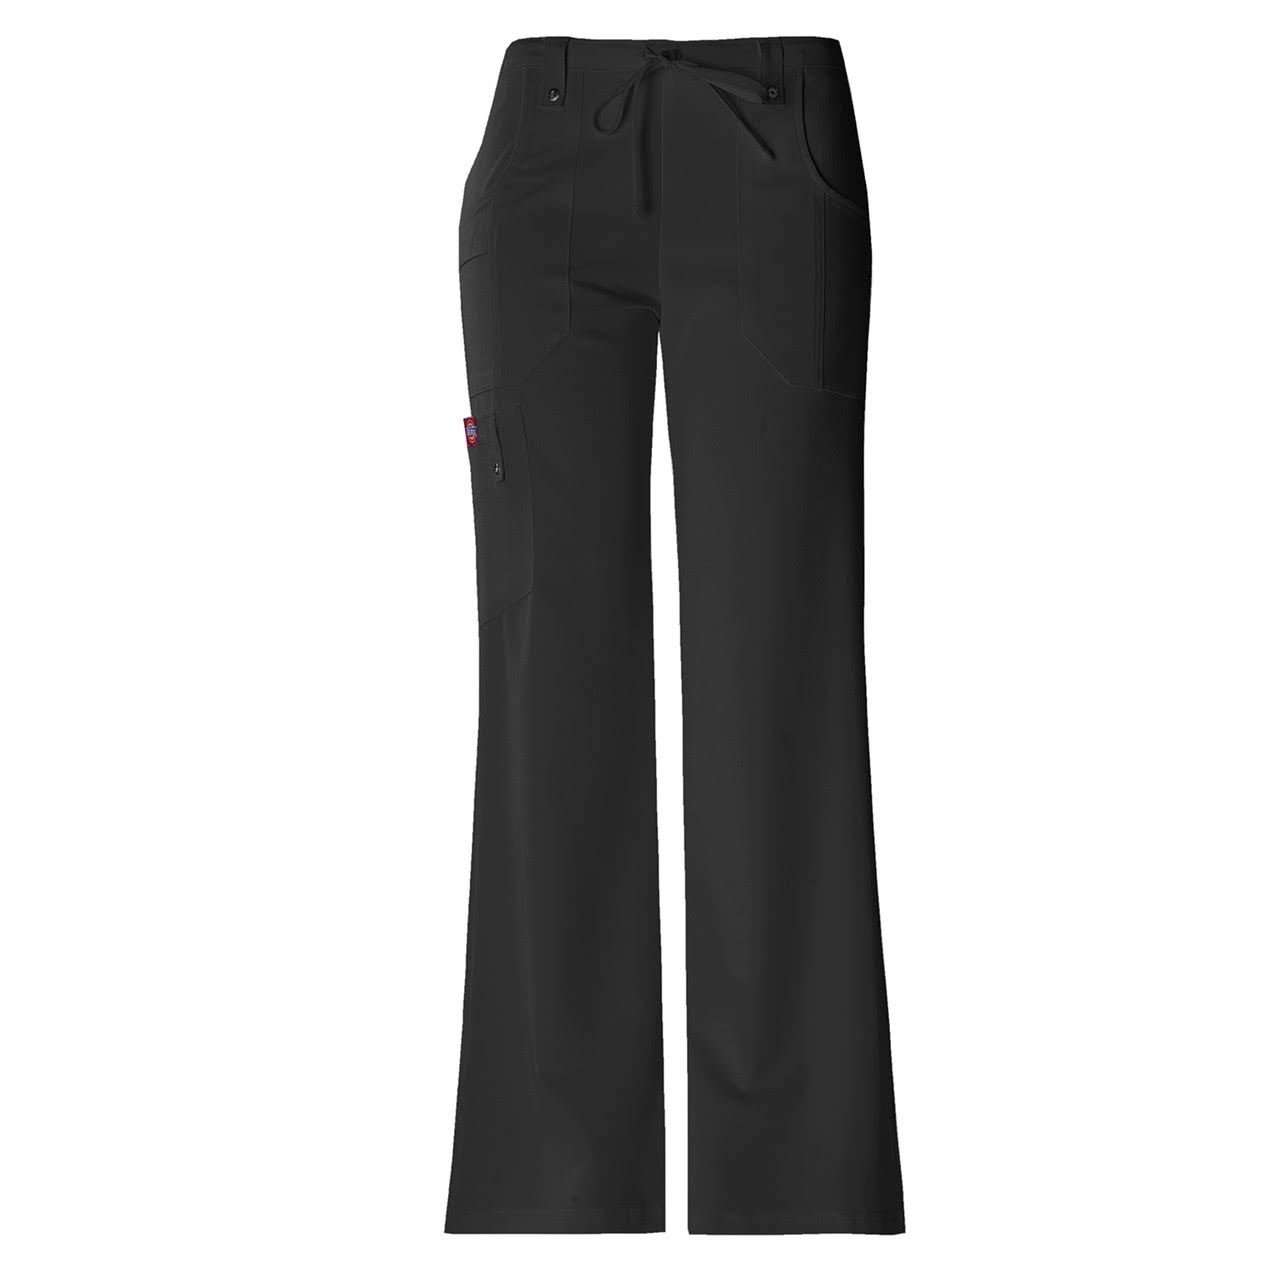 Dickies Women's Xtreme Stretch Fit Drawstring Flare Leg Pant - Black, Small